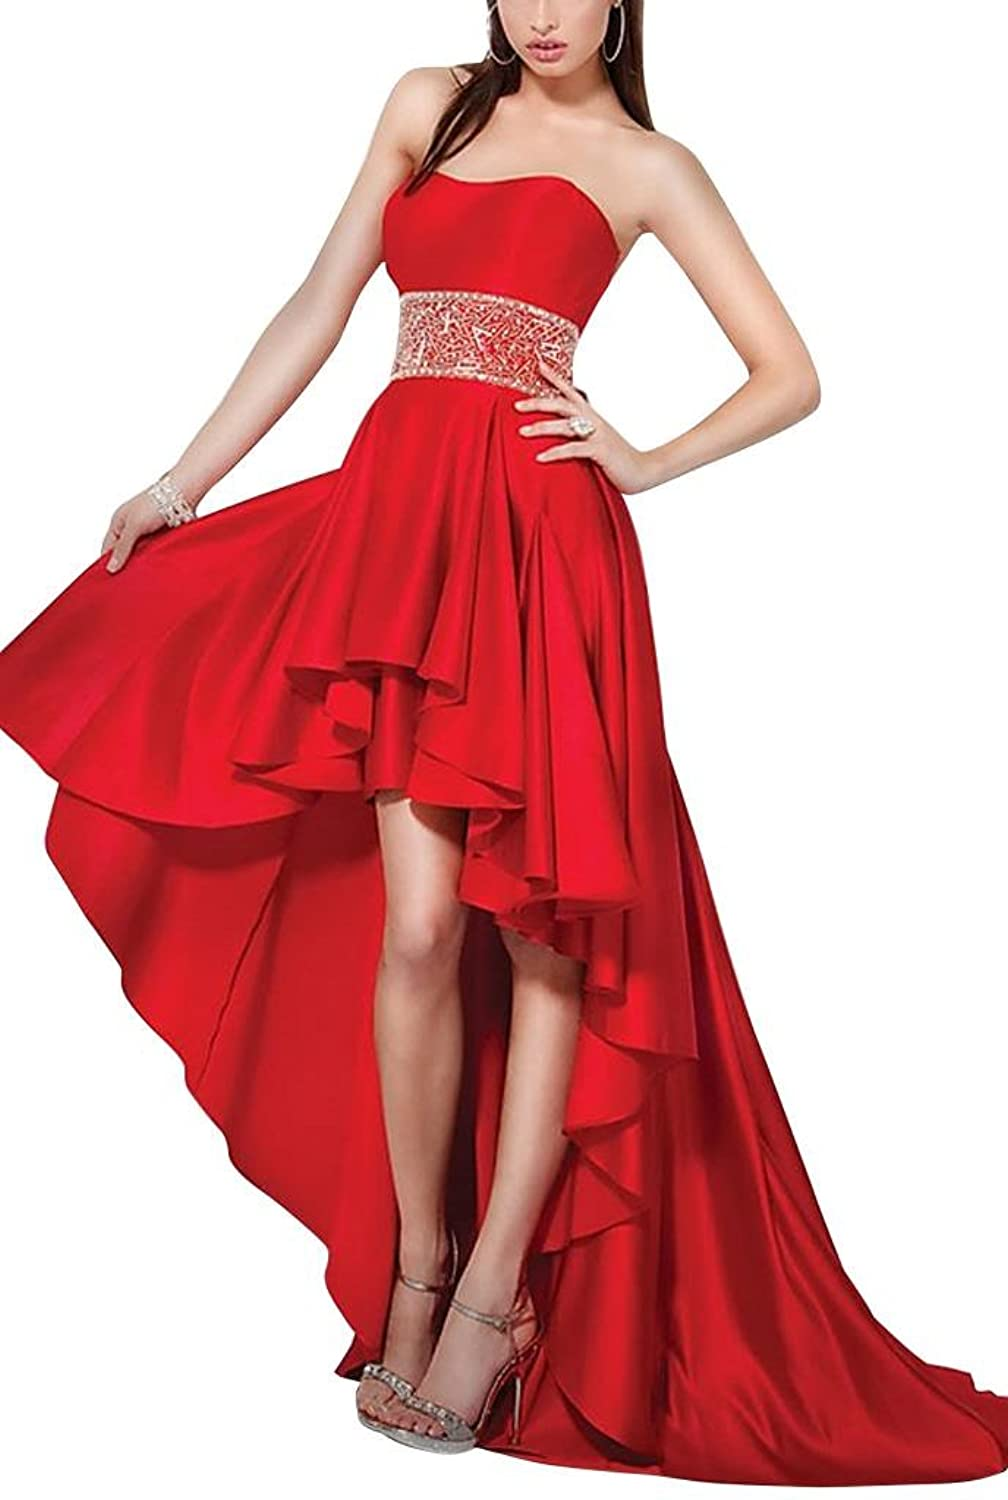 GEORGE BRIDE Designer New Trendy High-low Strapless Satin Prom Dress/Party Dress